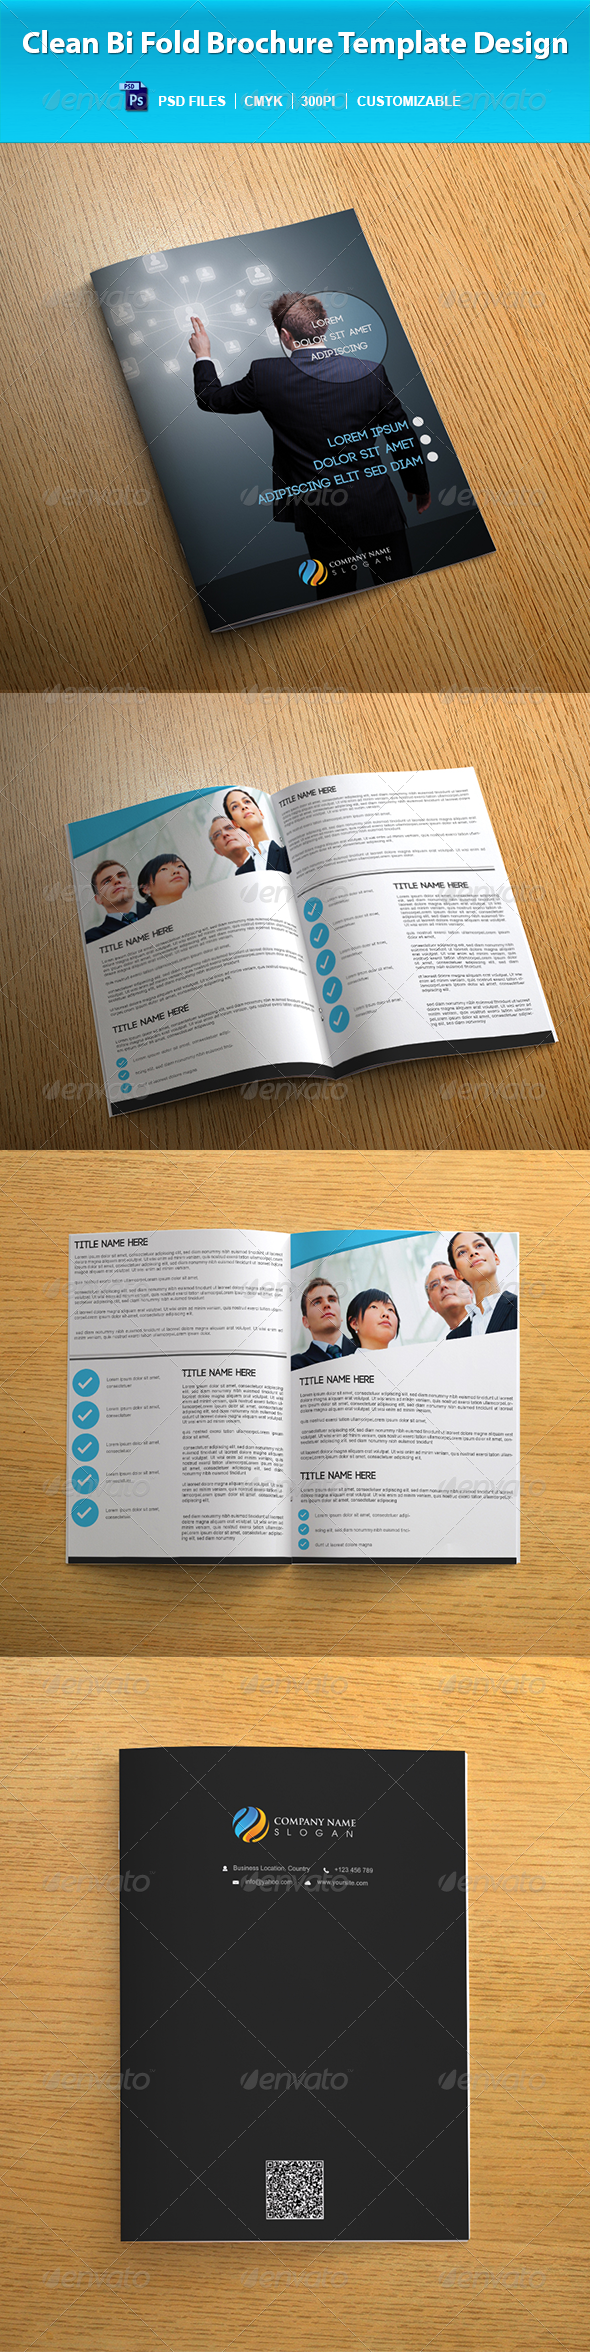 Clean Bi Fold Brochure Template Design - Corporate Brochures